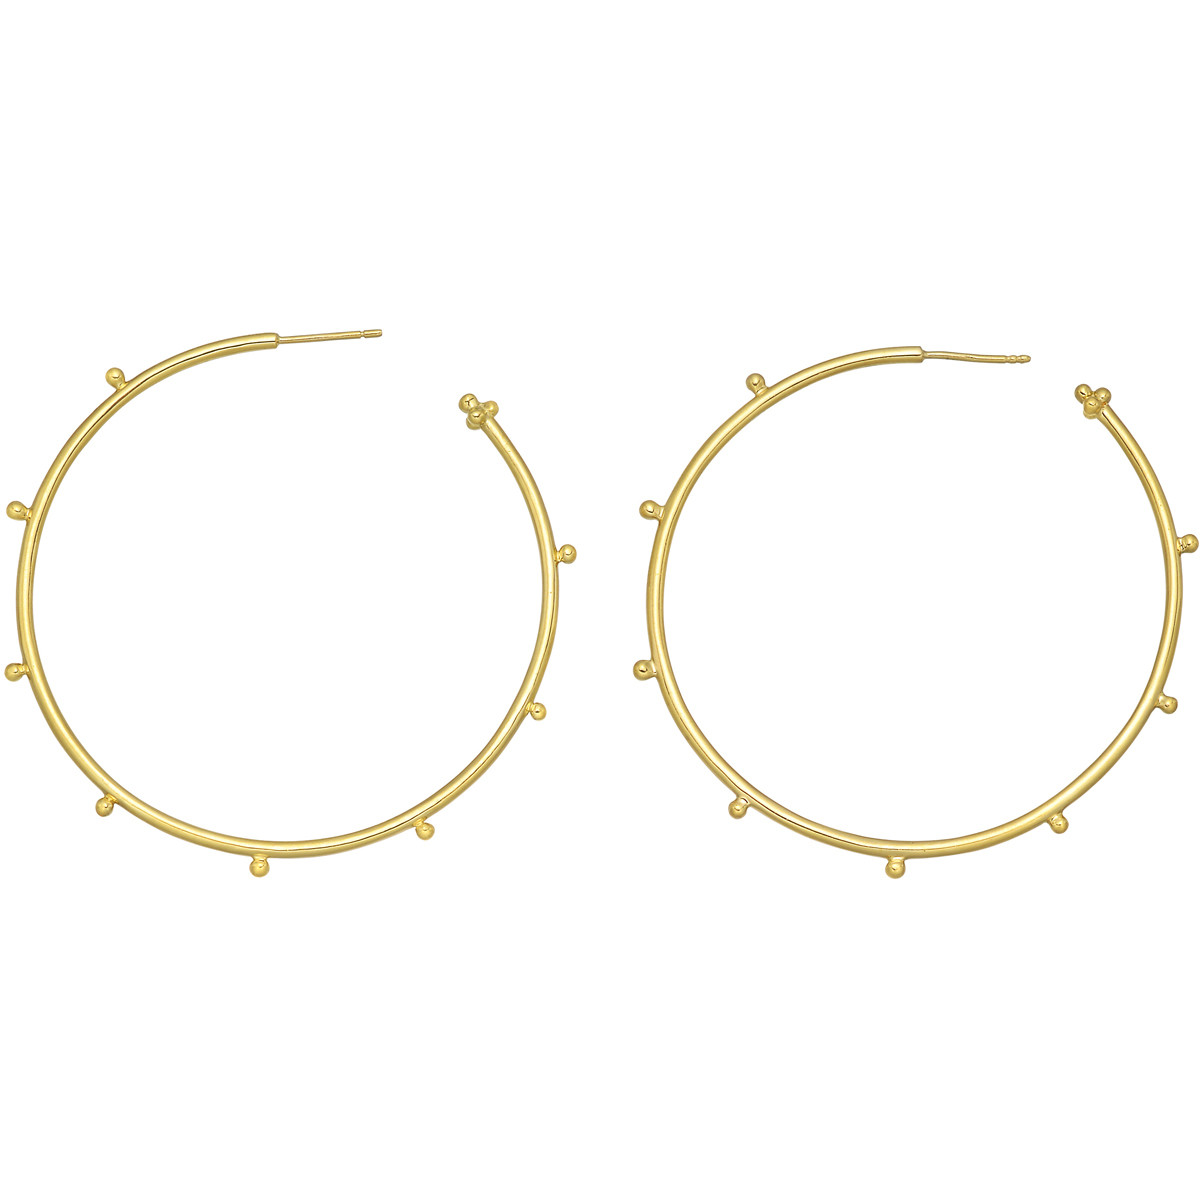 Large 18k Yellow Gold Granulated Hoop Earrings